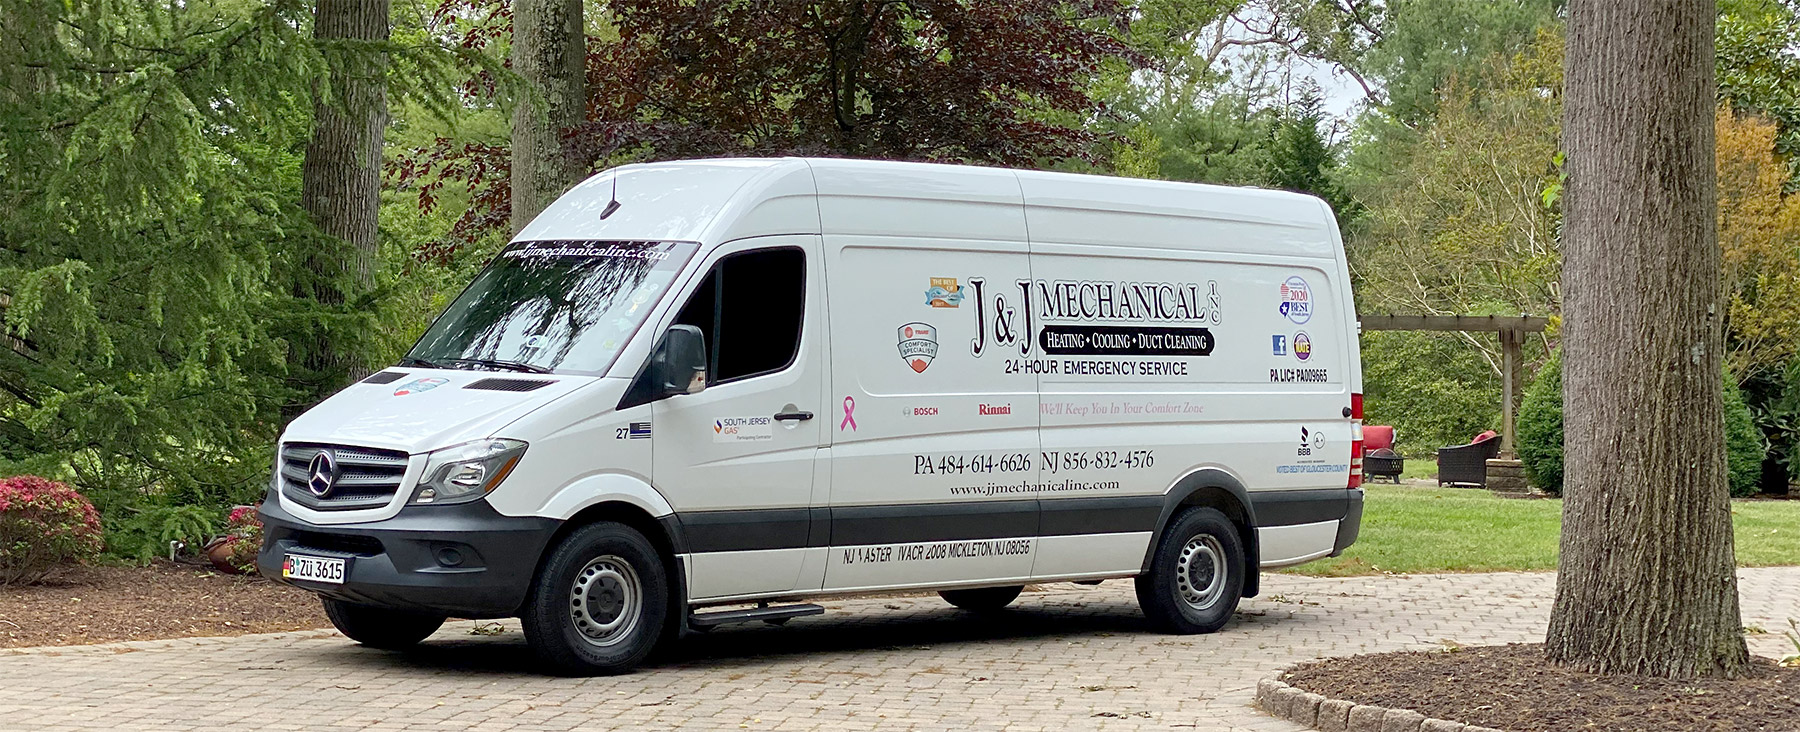 J&J Mechanical Van